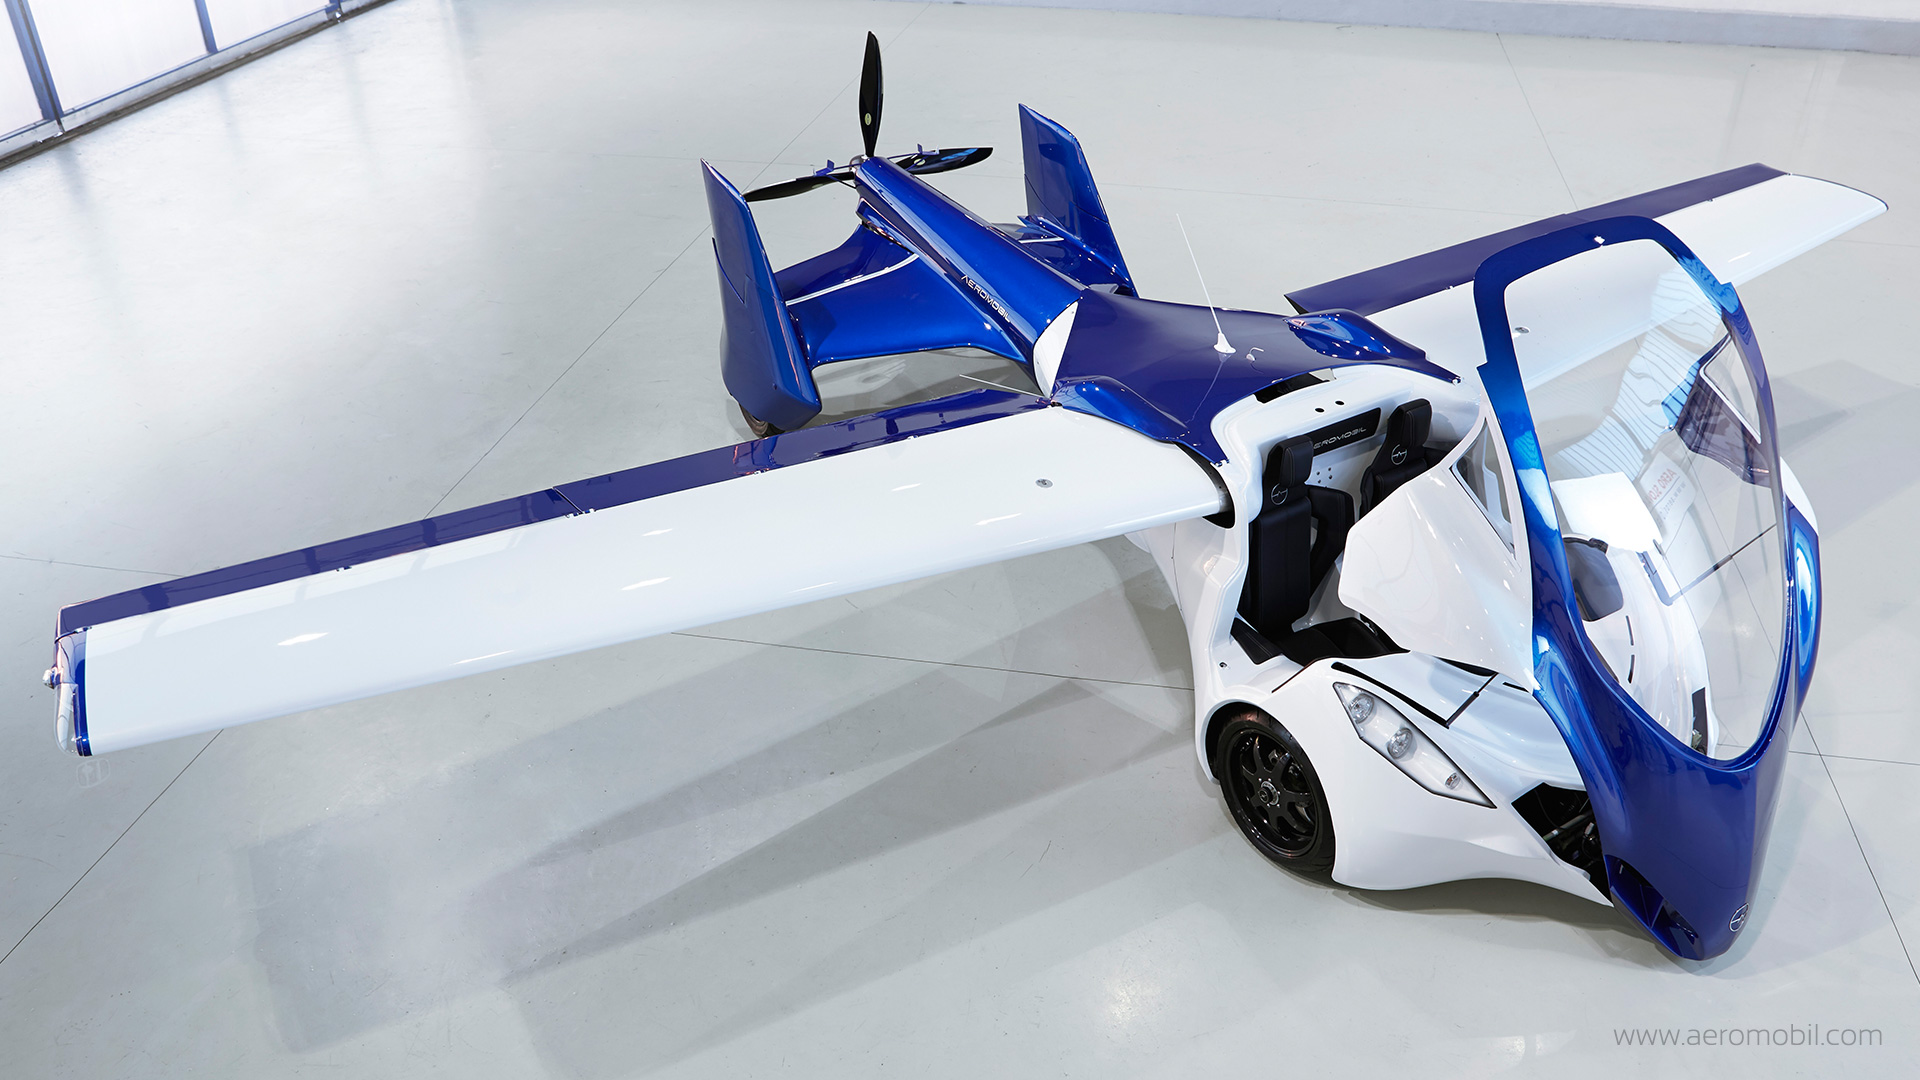 aeromobil 3 0 un prototype de voiture volante fonctionnel. Black Bedroom Furniture Sets. Home Design Ideas